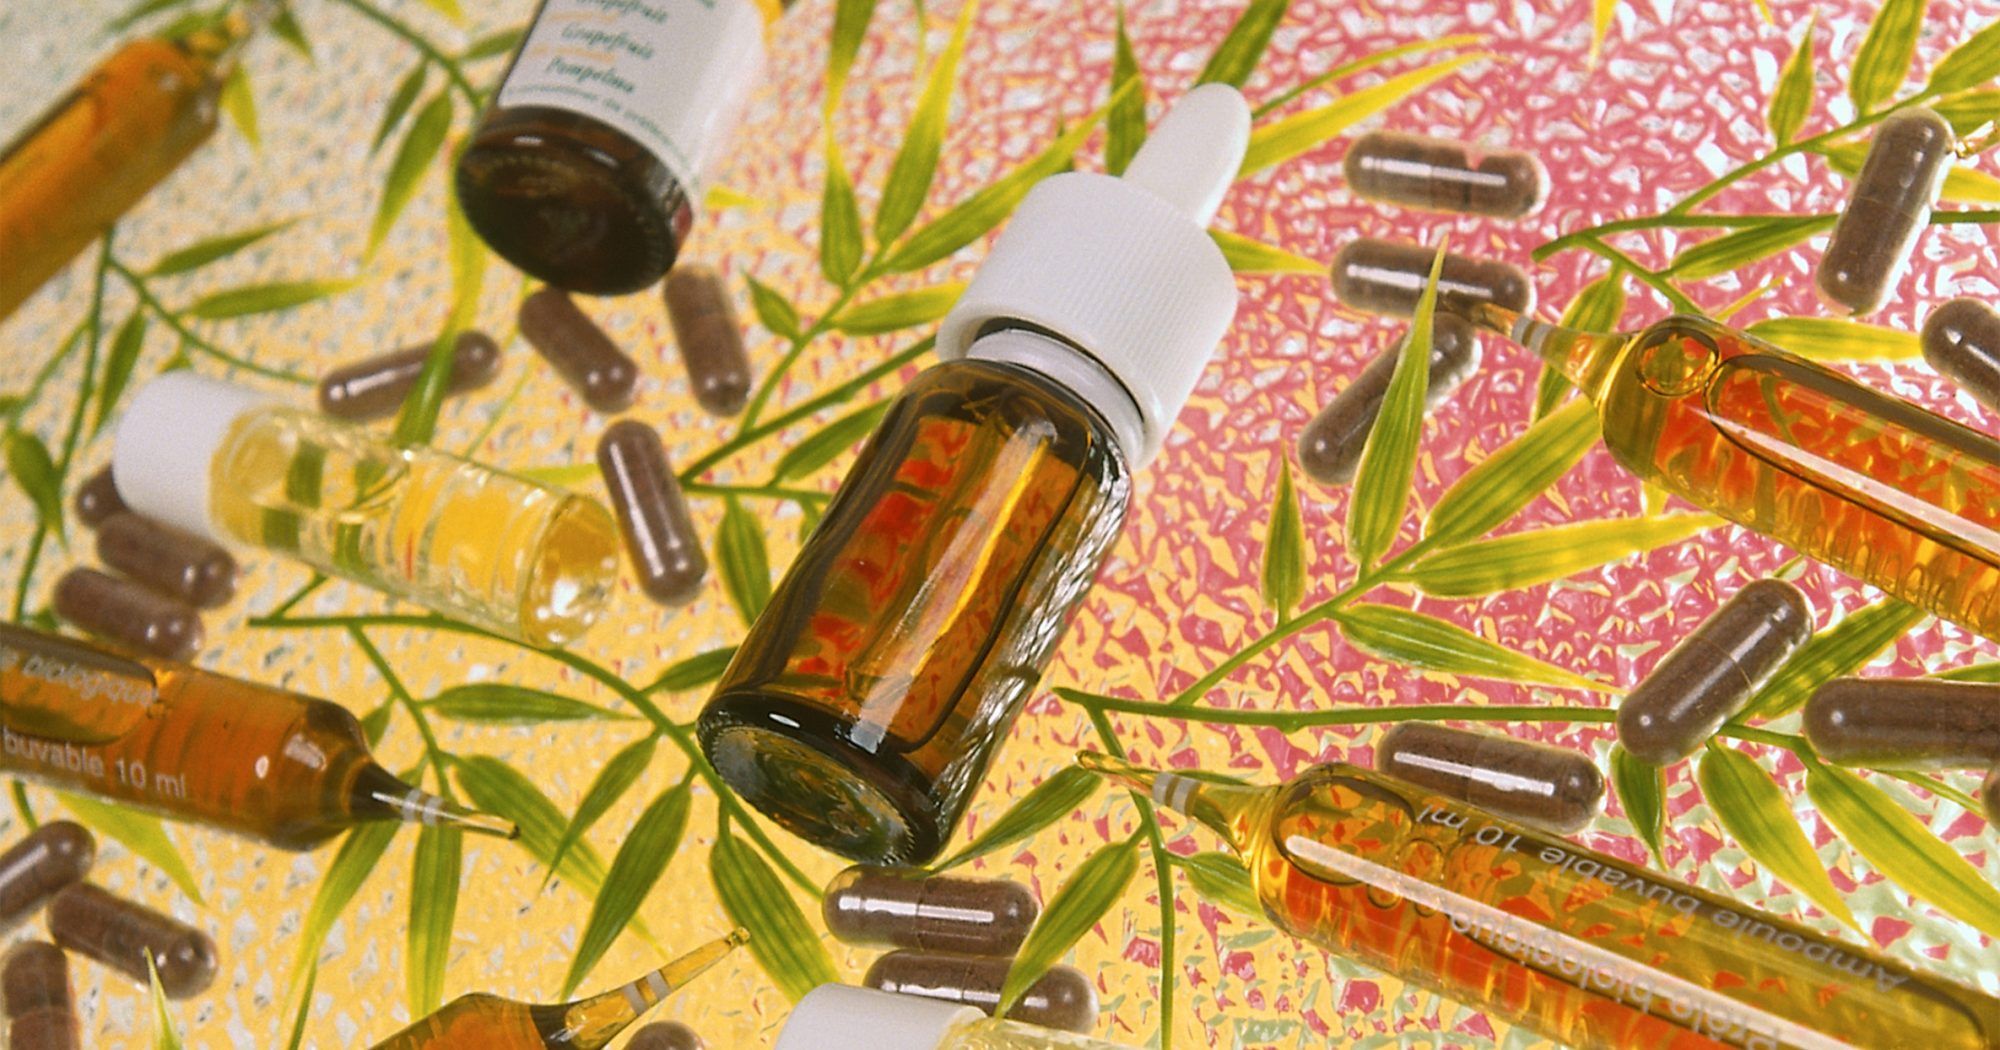 Are Full Spectrum Tinctures Potent?